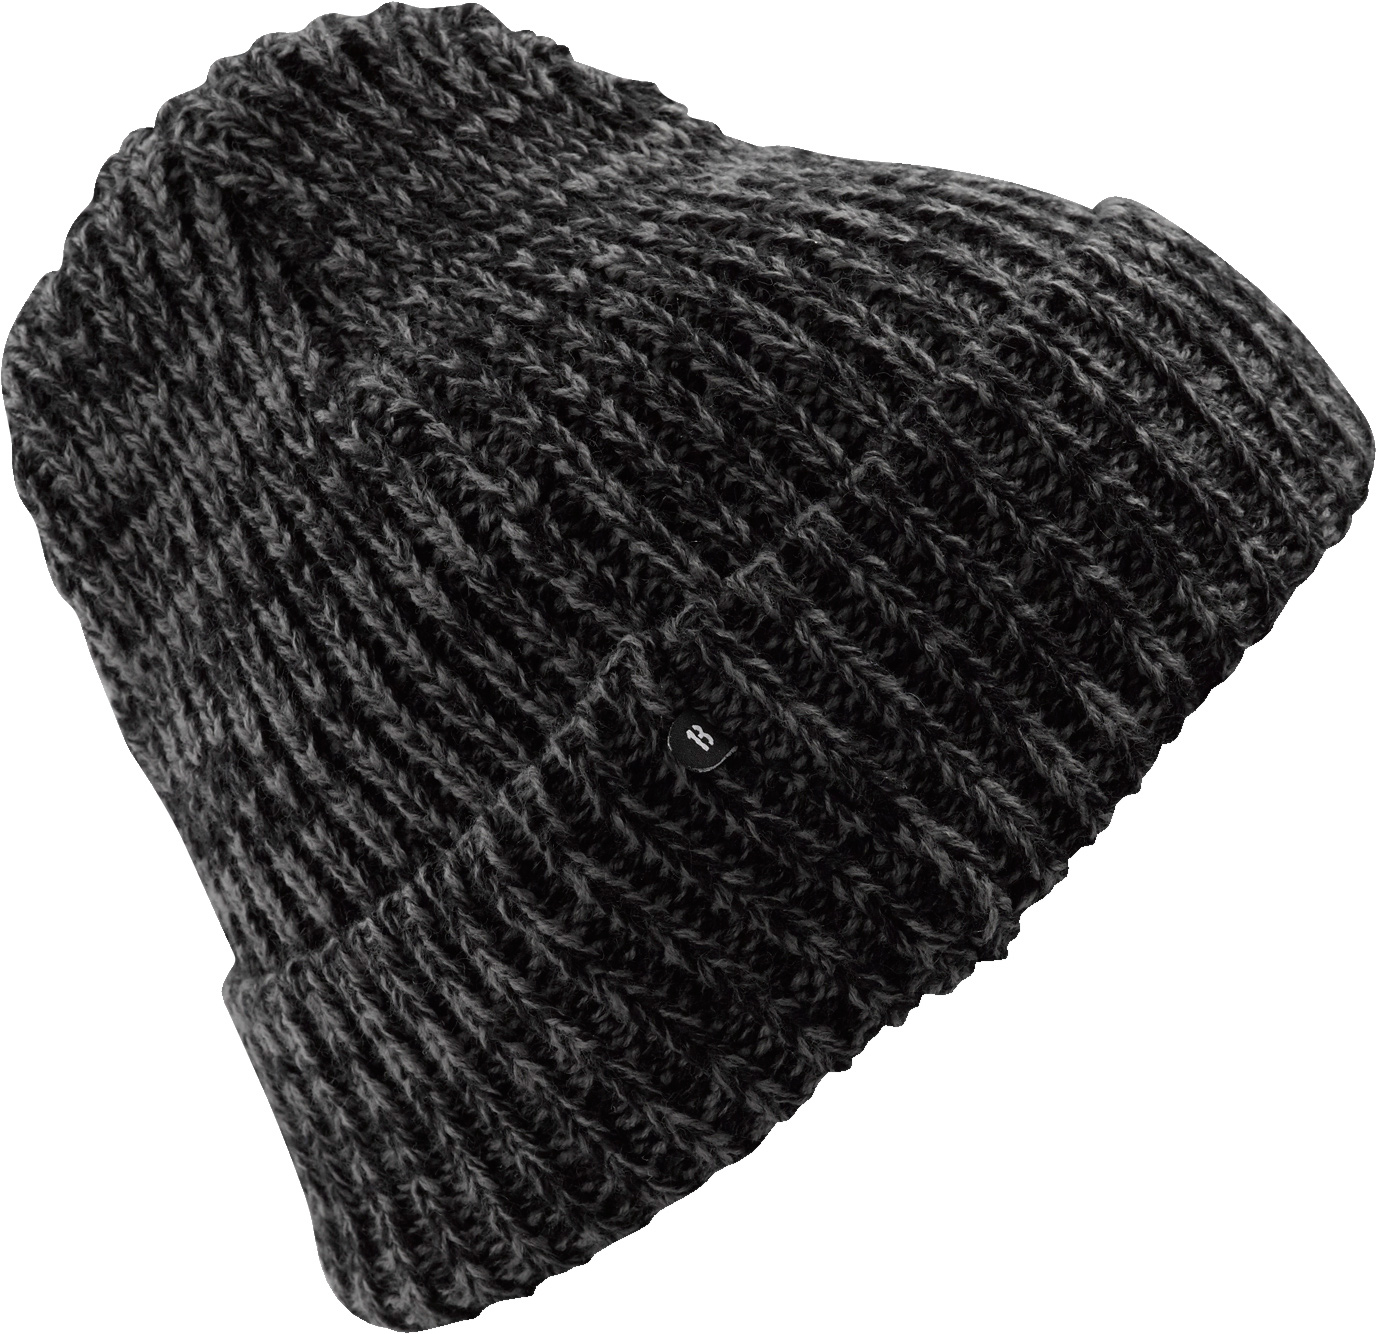 Snowboard Key Features of the Burton Angus Beanie: 100% Acrylic with Flecked Yarn Fold Up with Skully Fit - $21.00